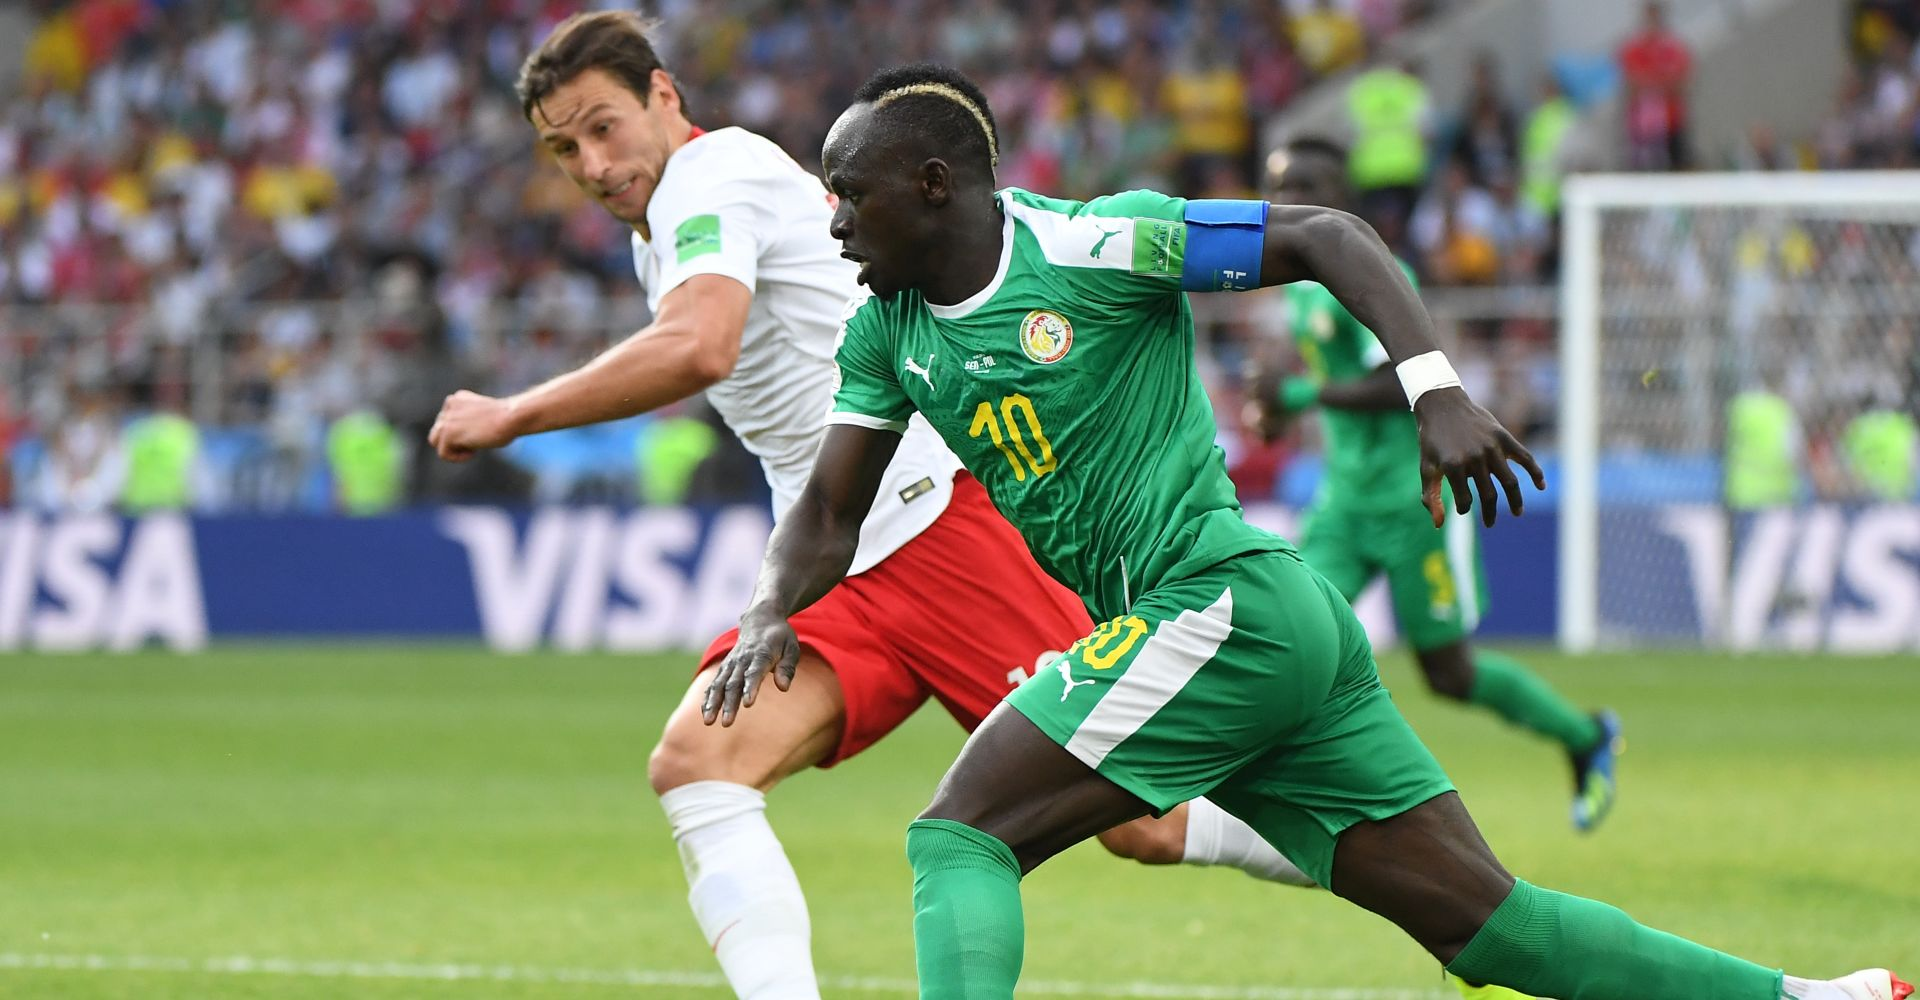 Senegal vs Colombia should see Sadio Mane in flight once more